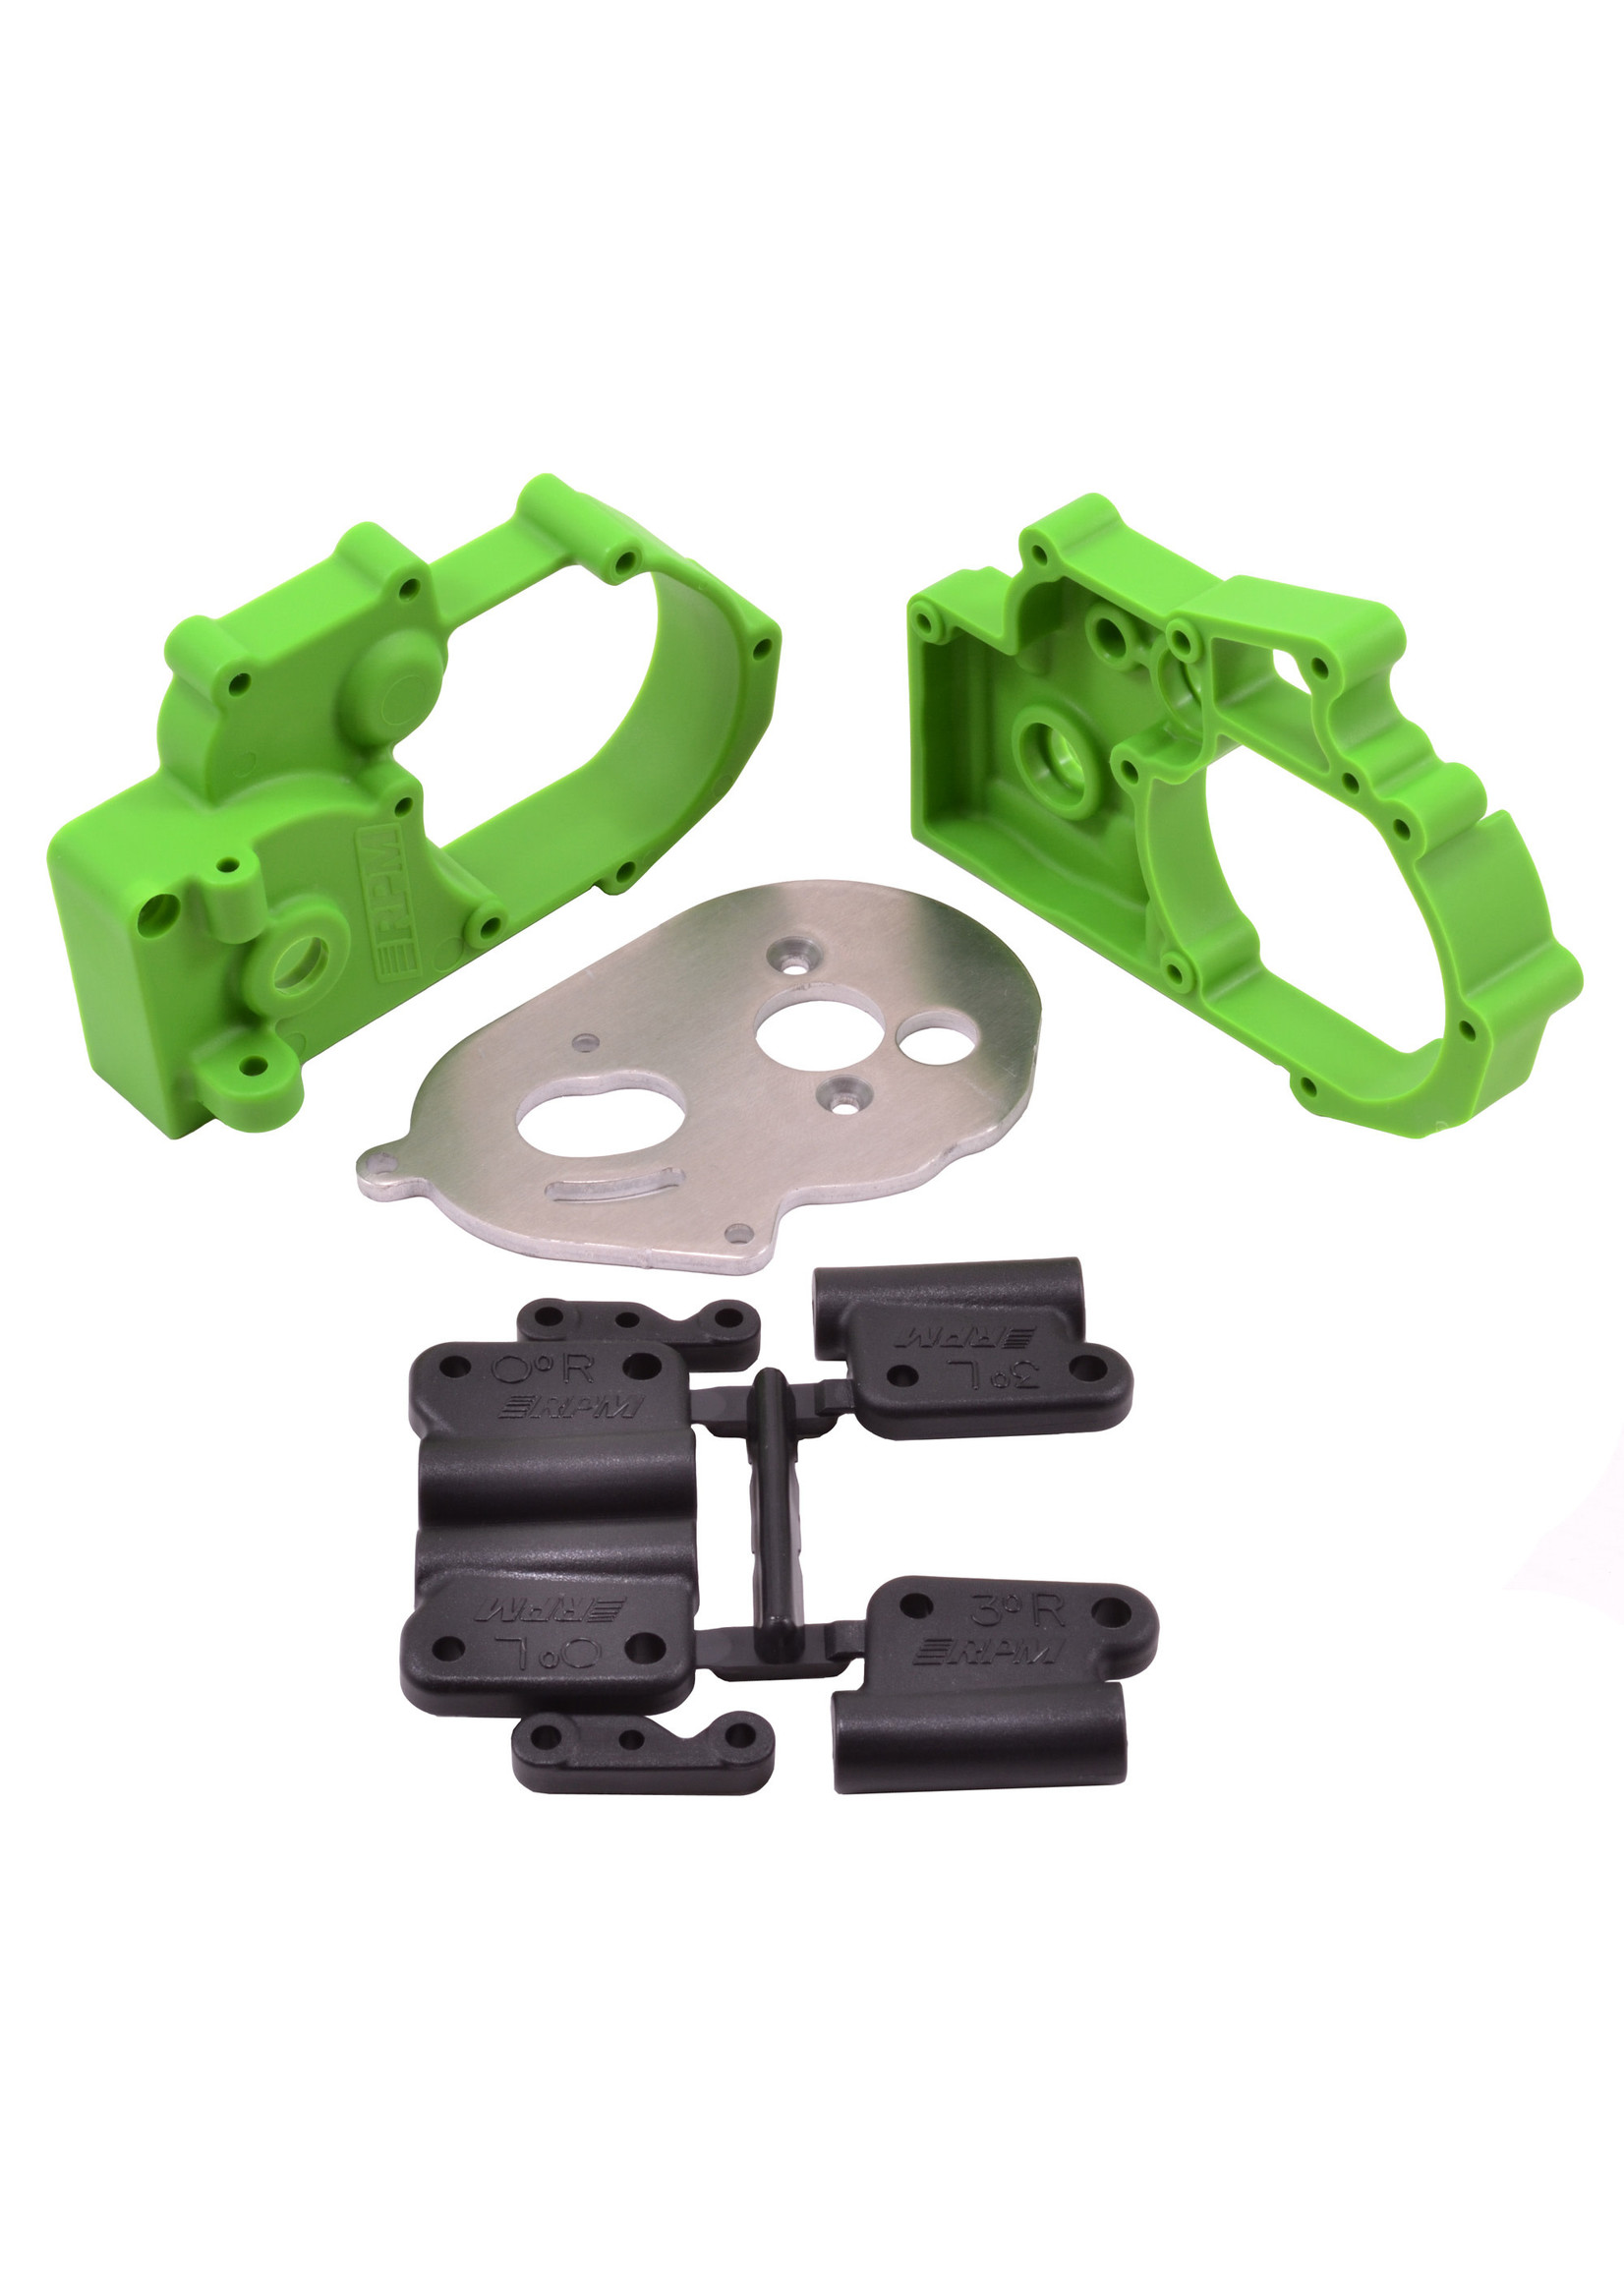 RPM RPM73614 RPM Green Gearbox Housing and Rear Mounts for Traxxas 2wd Vehicles